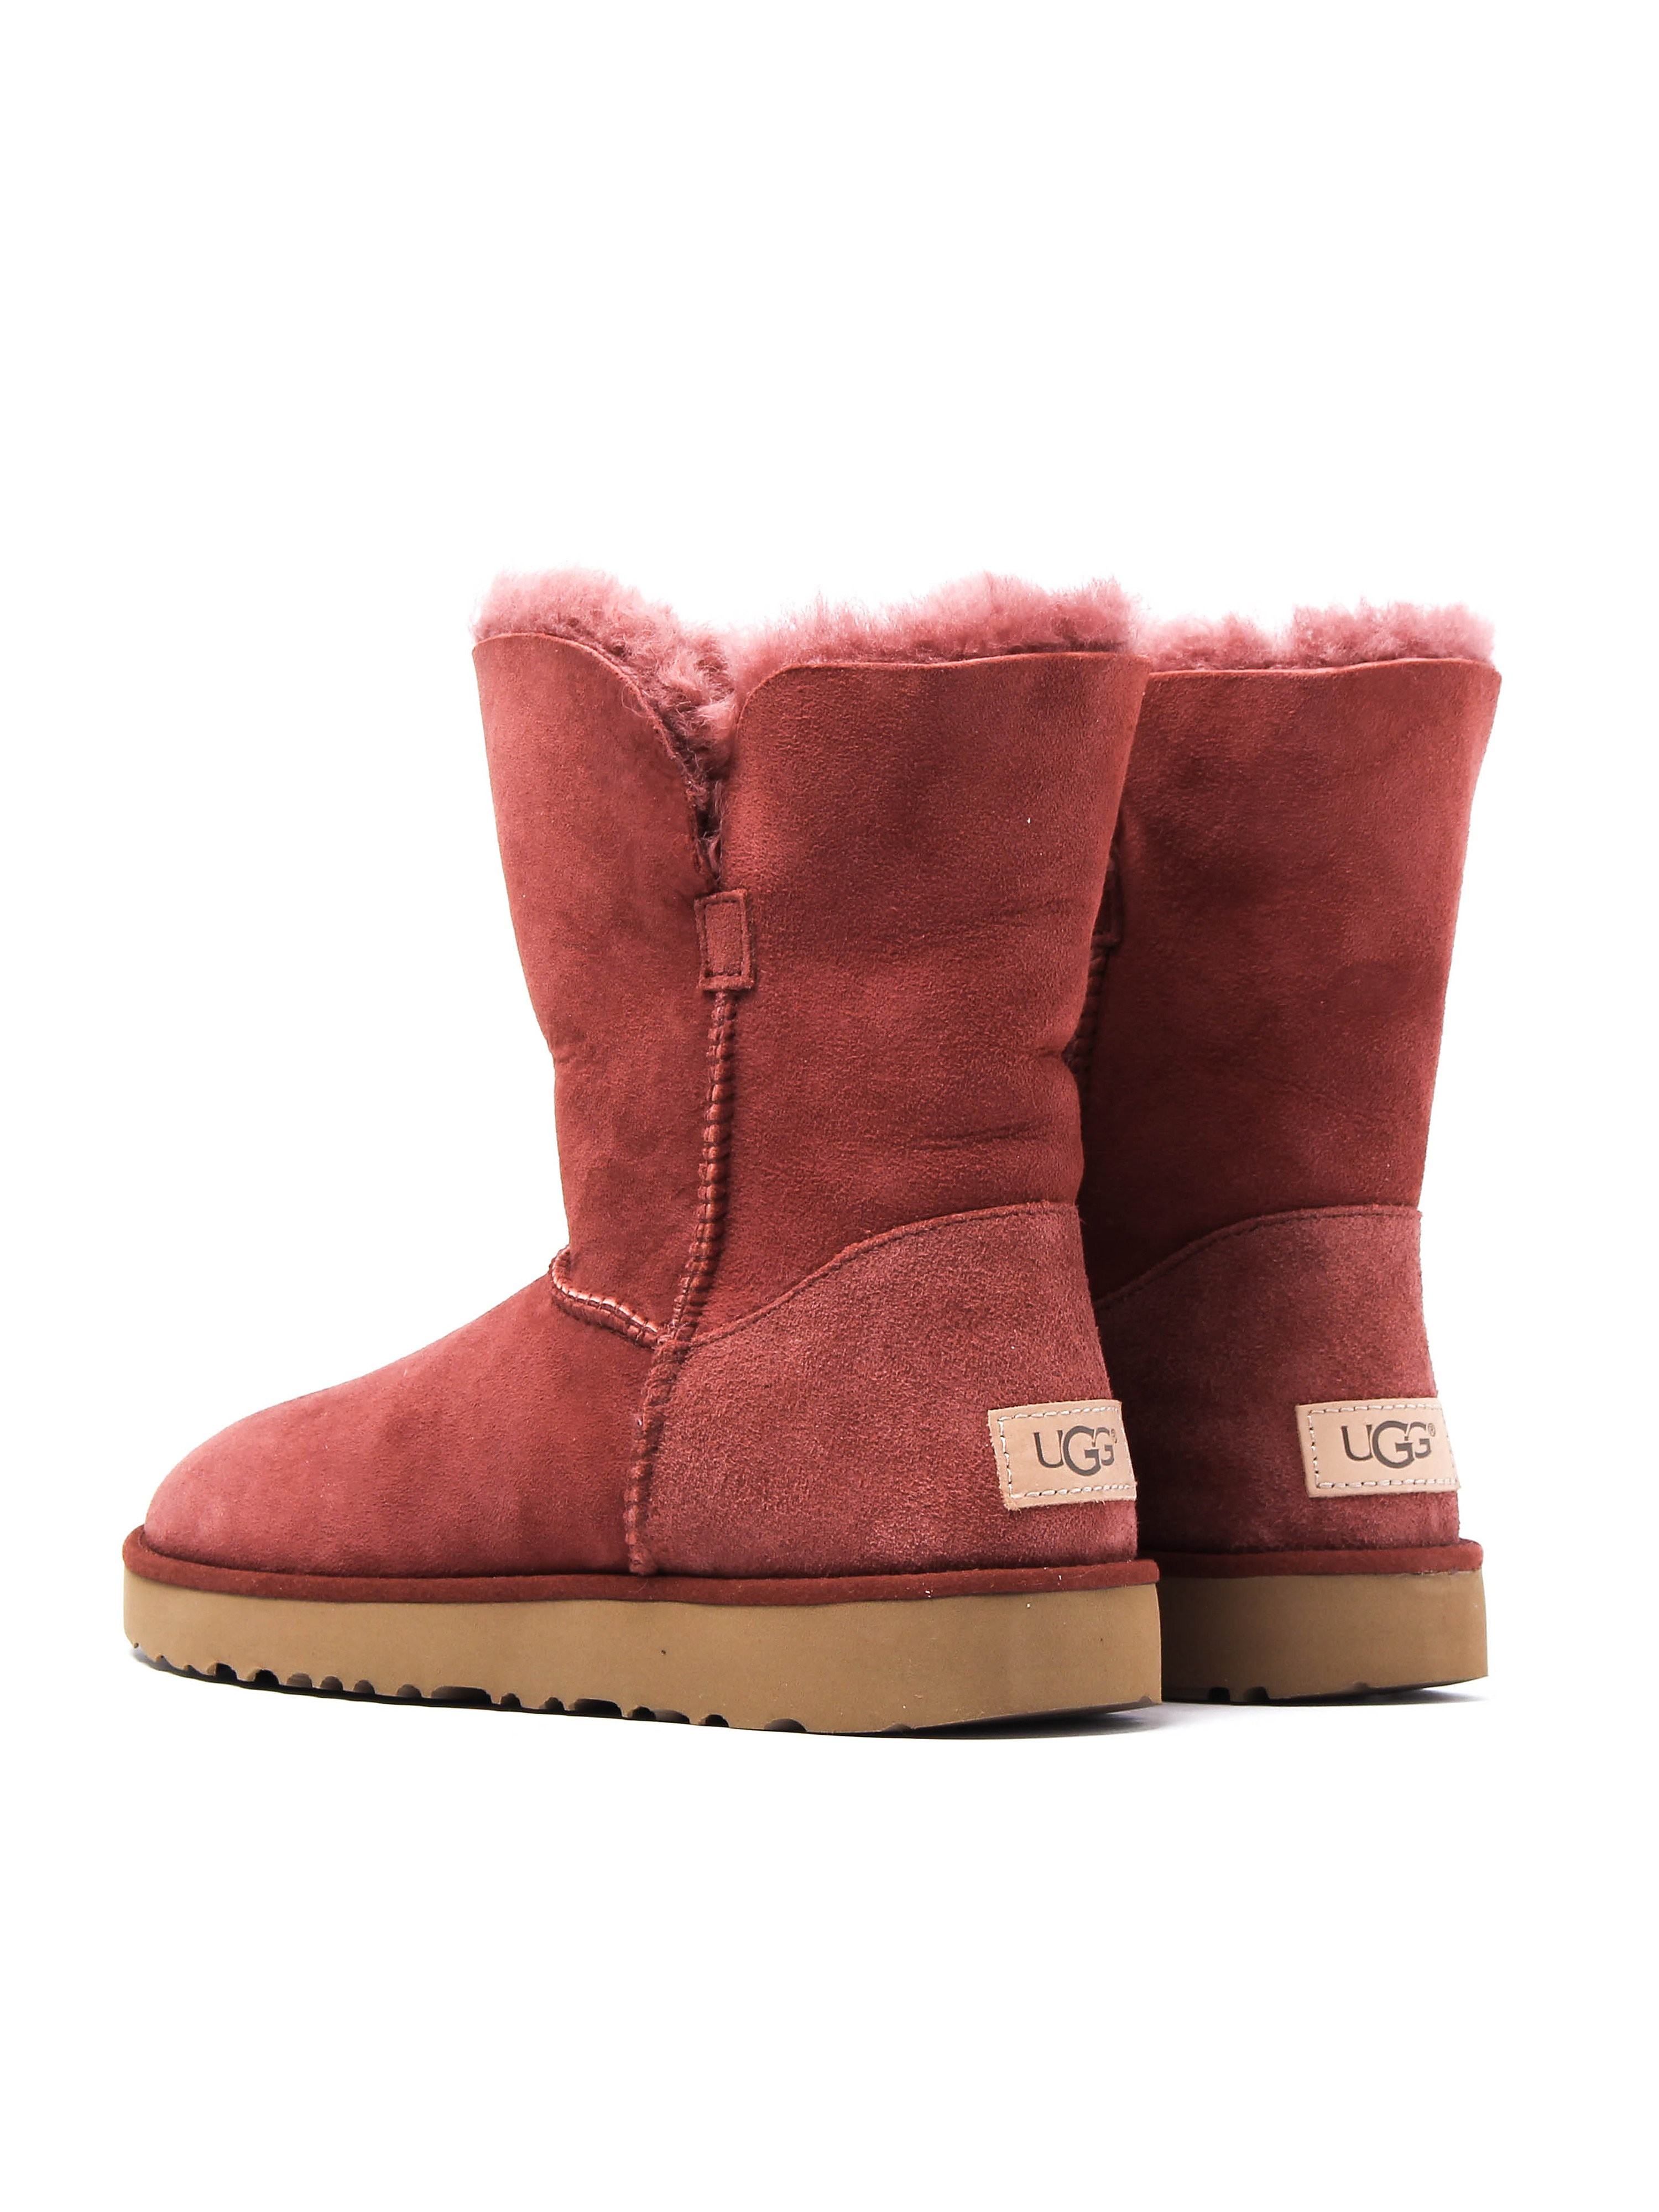 UGG Women's Classic Cuff Short Boots - Red Clay